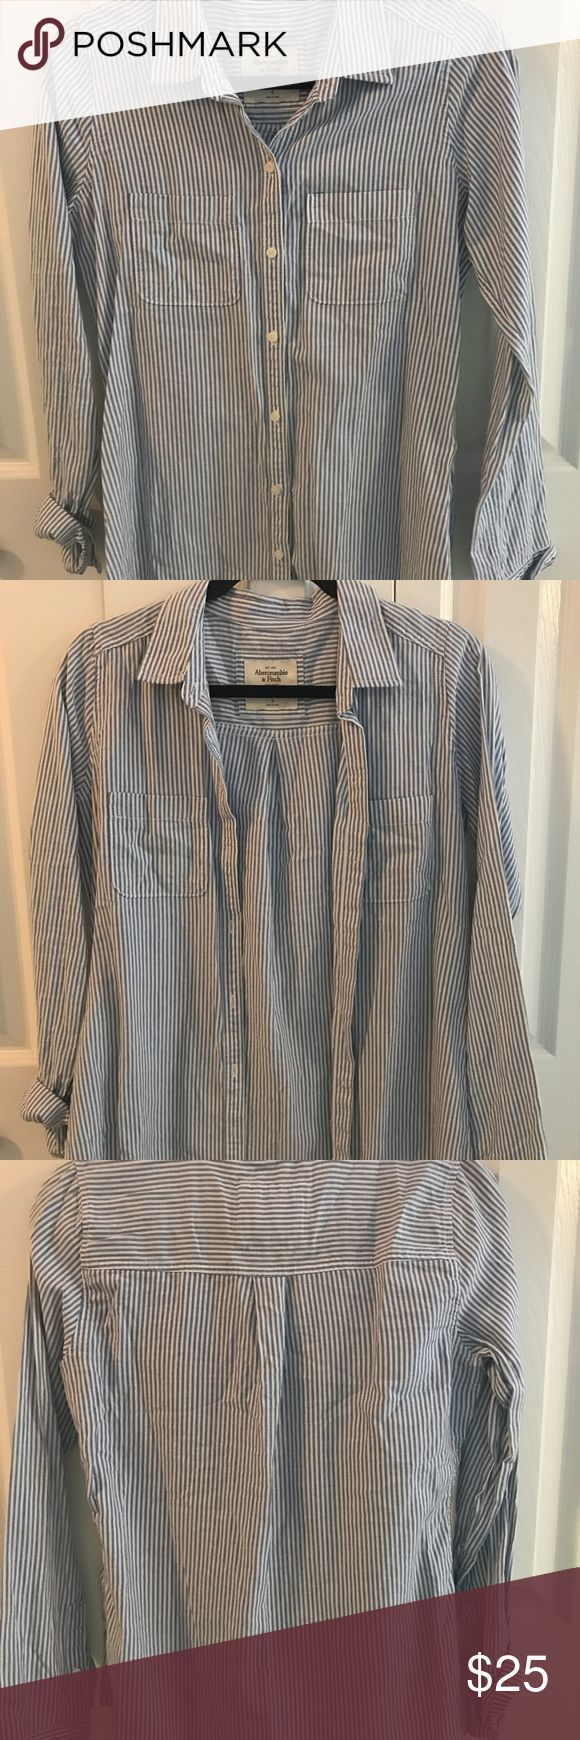 Blue and white stripped button up Women's blue and white stripped button up. Can roll up or down sleeves. Only worn once Abercrombie & Fitch Tops Button Down Shirts